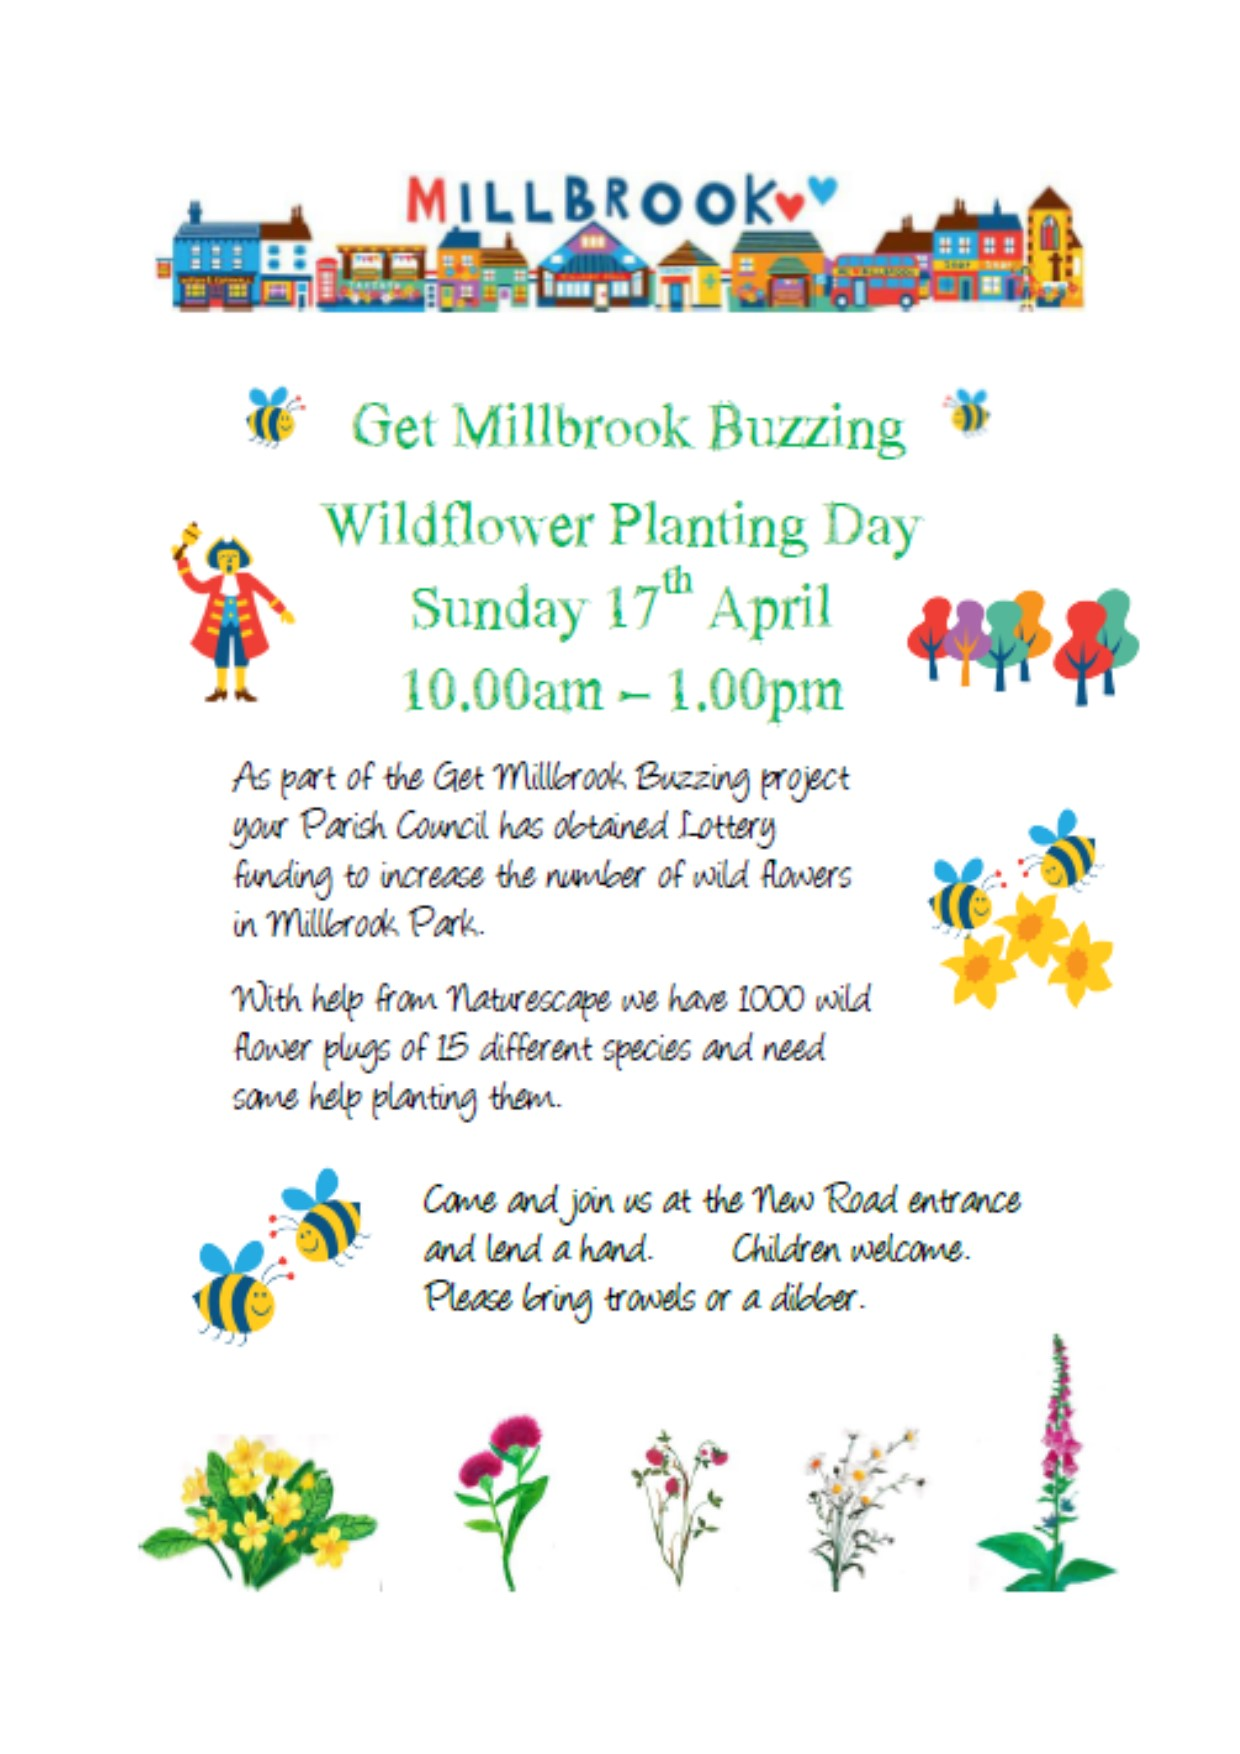 Get Millbrook Buzzing Wildflower Planting Day